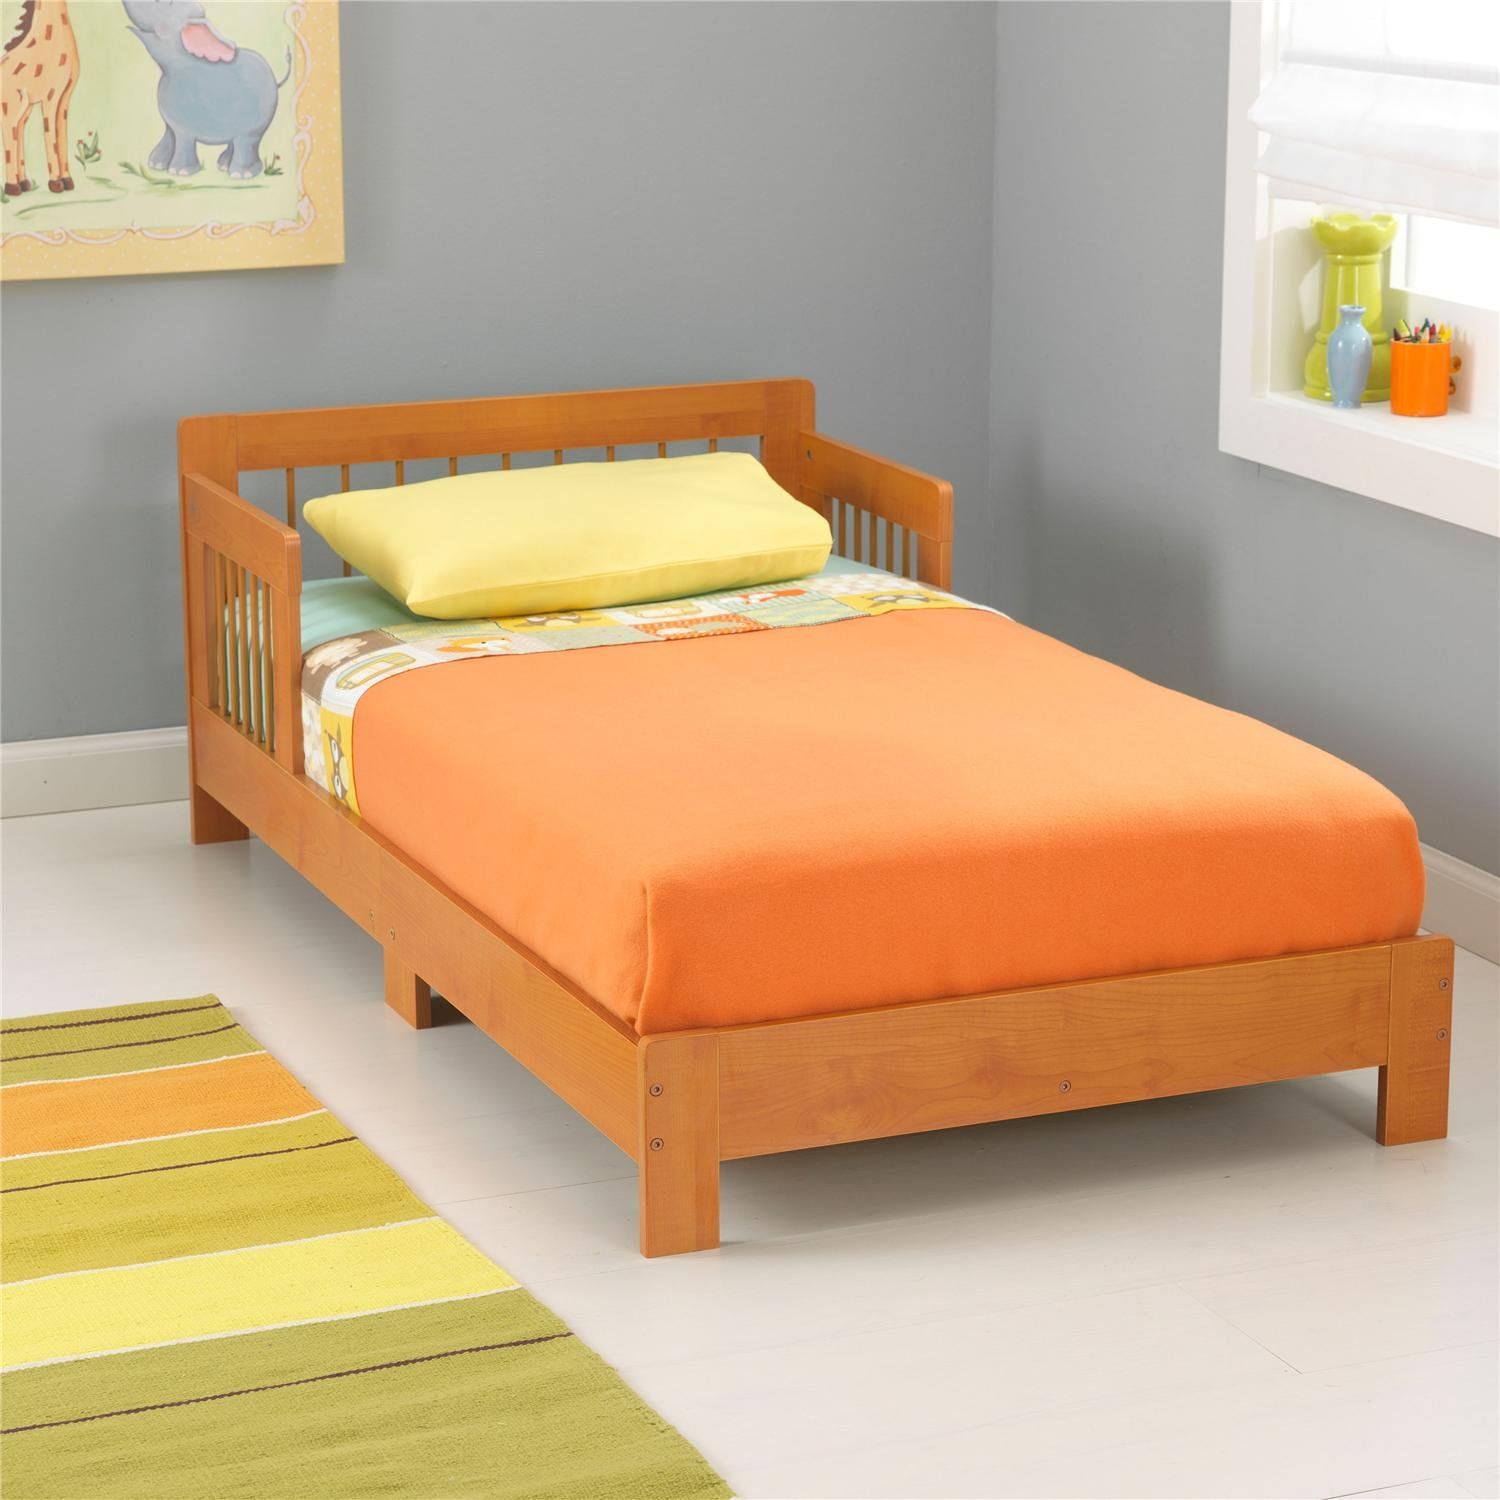 Amazon.com: KidKraft Toddler Houston Bed, Honey: Toys & Games